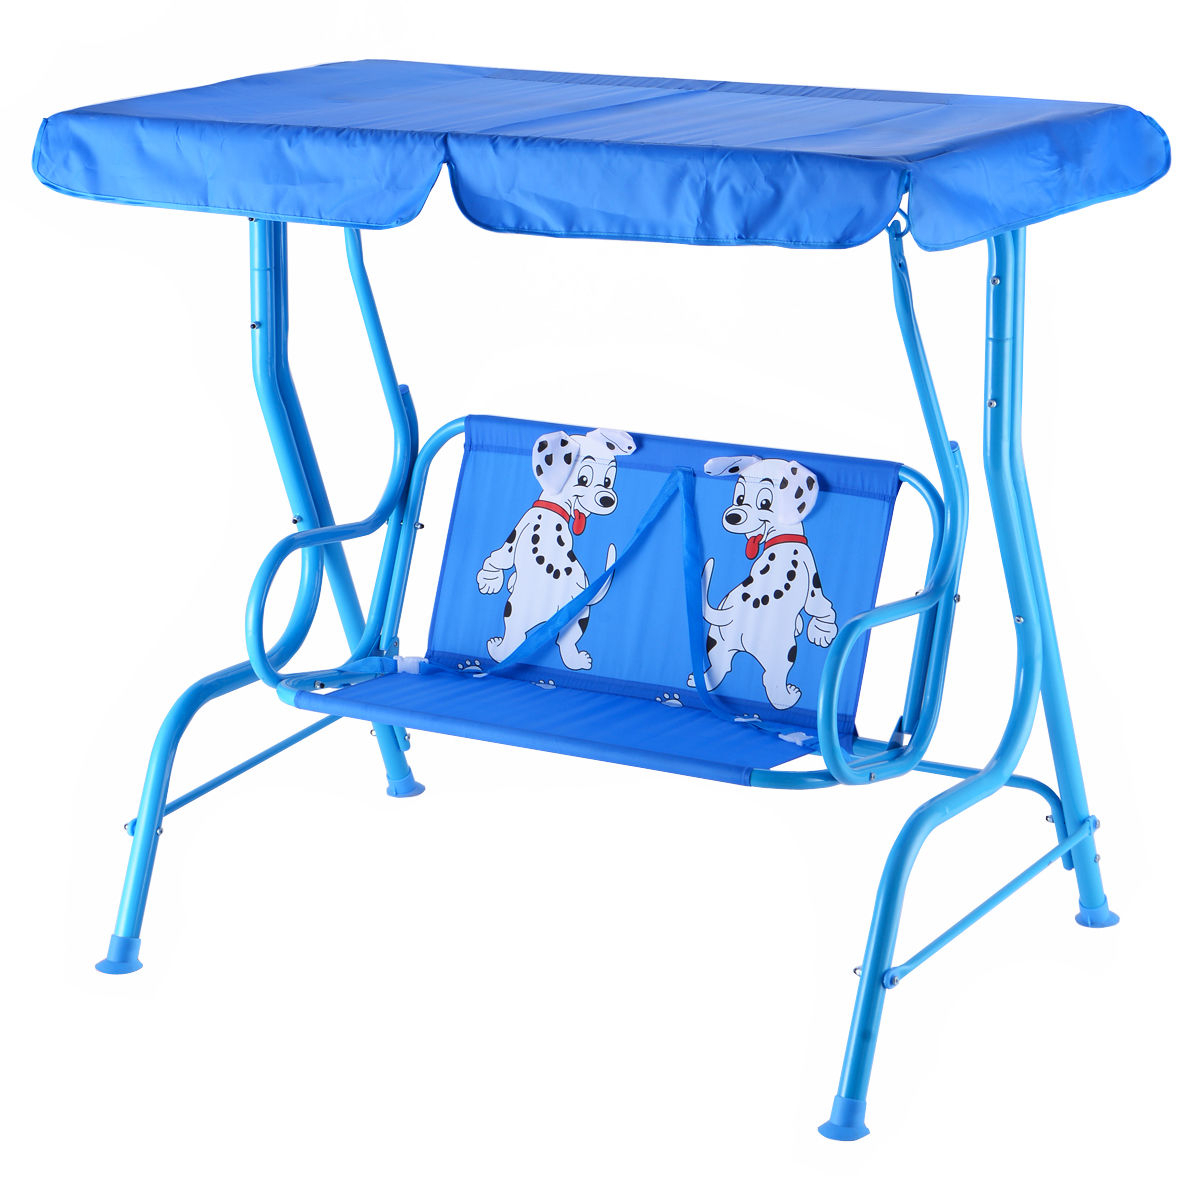 Most Popular Outdoor Kids Patio Swing Bench With Canopy 2 Seats In Porch Swings With Canopy (View 24 of 25)